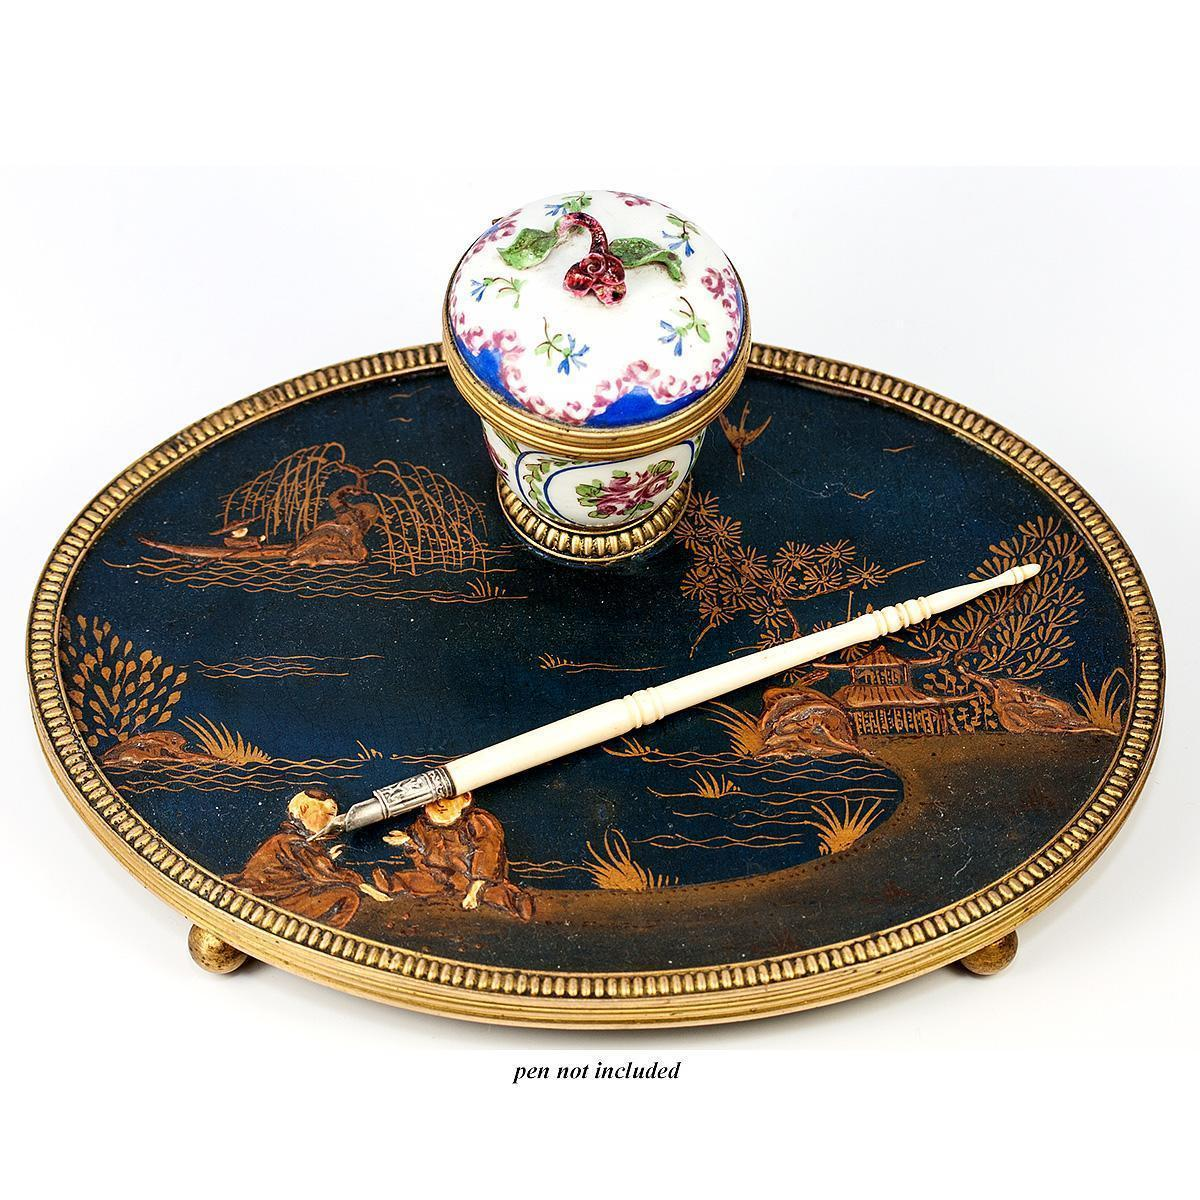 Antique French Napoleon III Era Chinoiserie Inkwell, Papier Mache Stand, Old Paris Porcelain